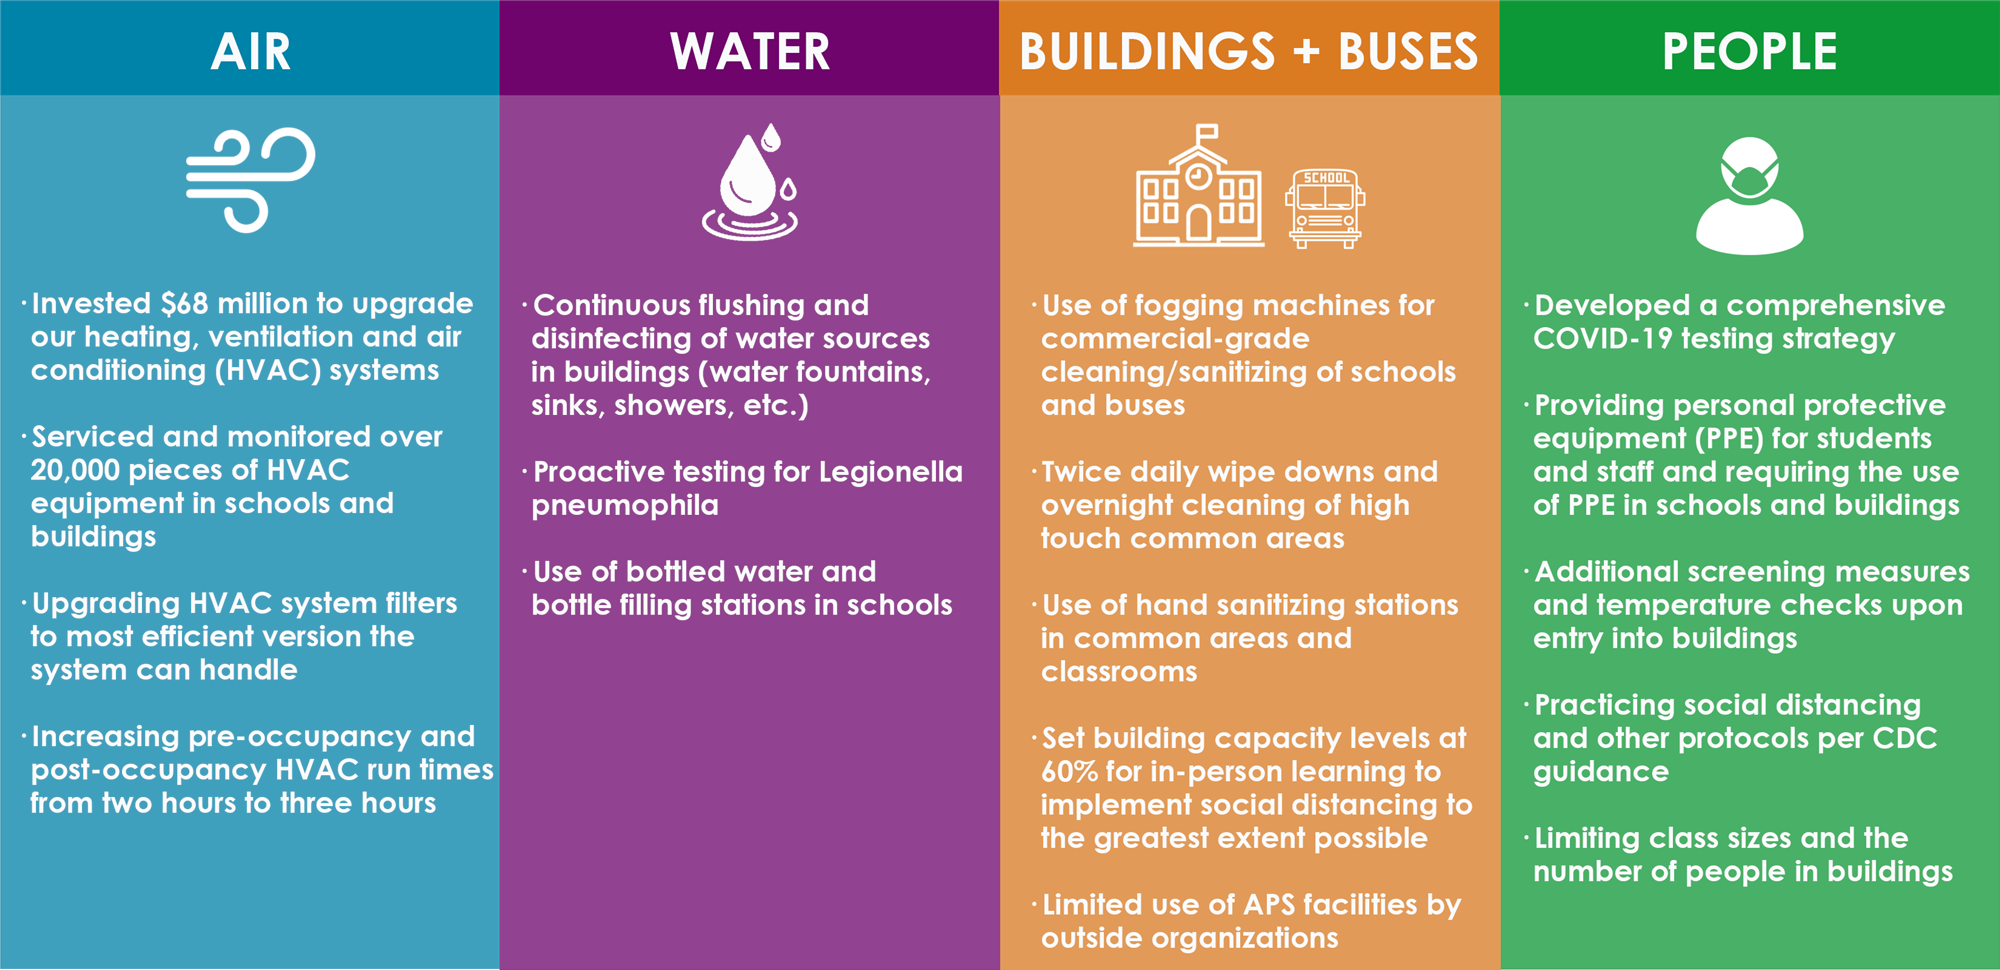 Air, Water, Buildings and People Protective Measures